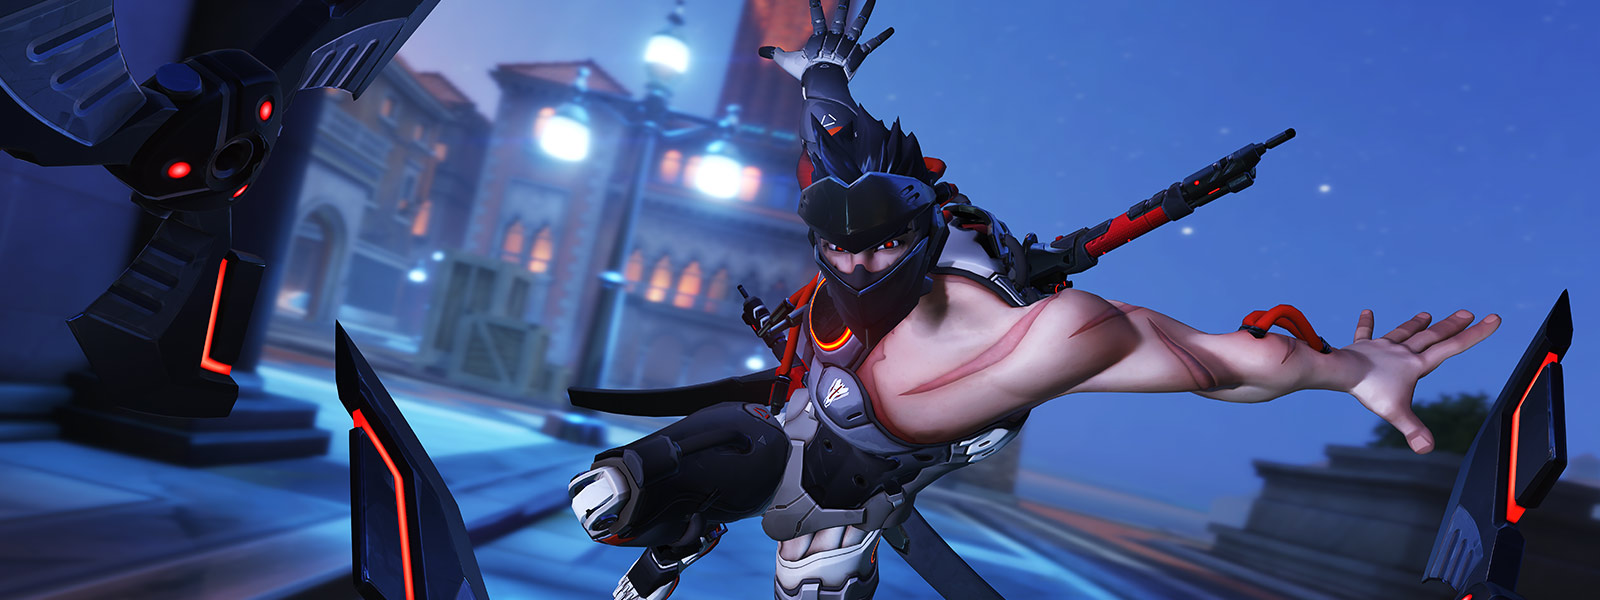 Front view of Retribution Genji throwing shurikens toward the camera